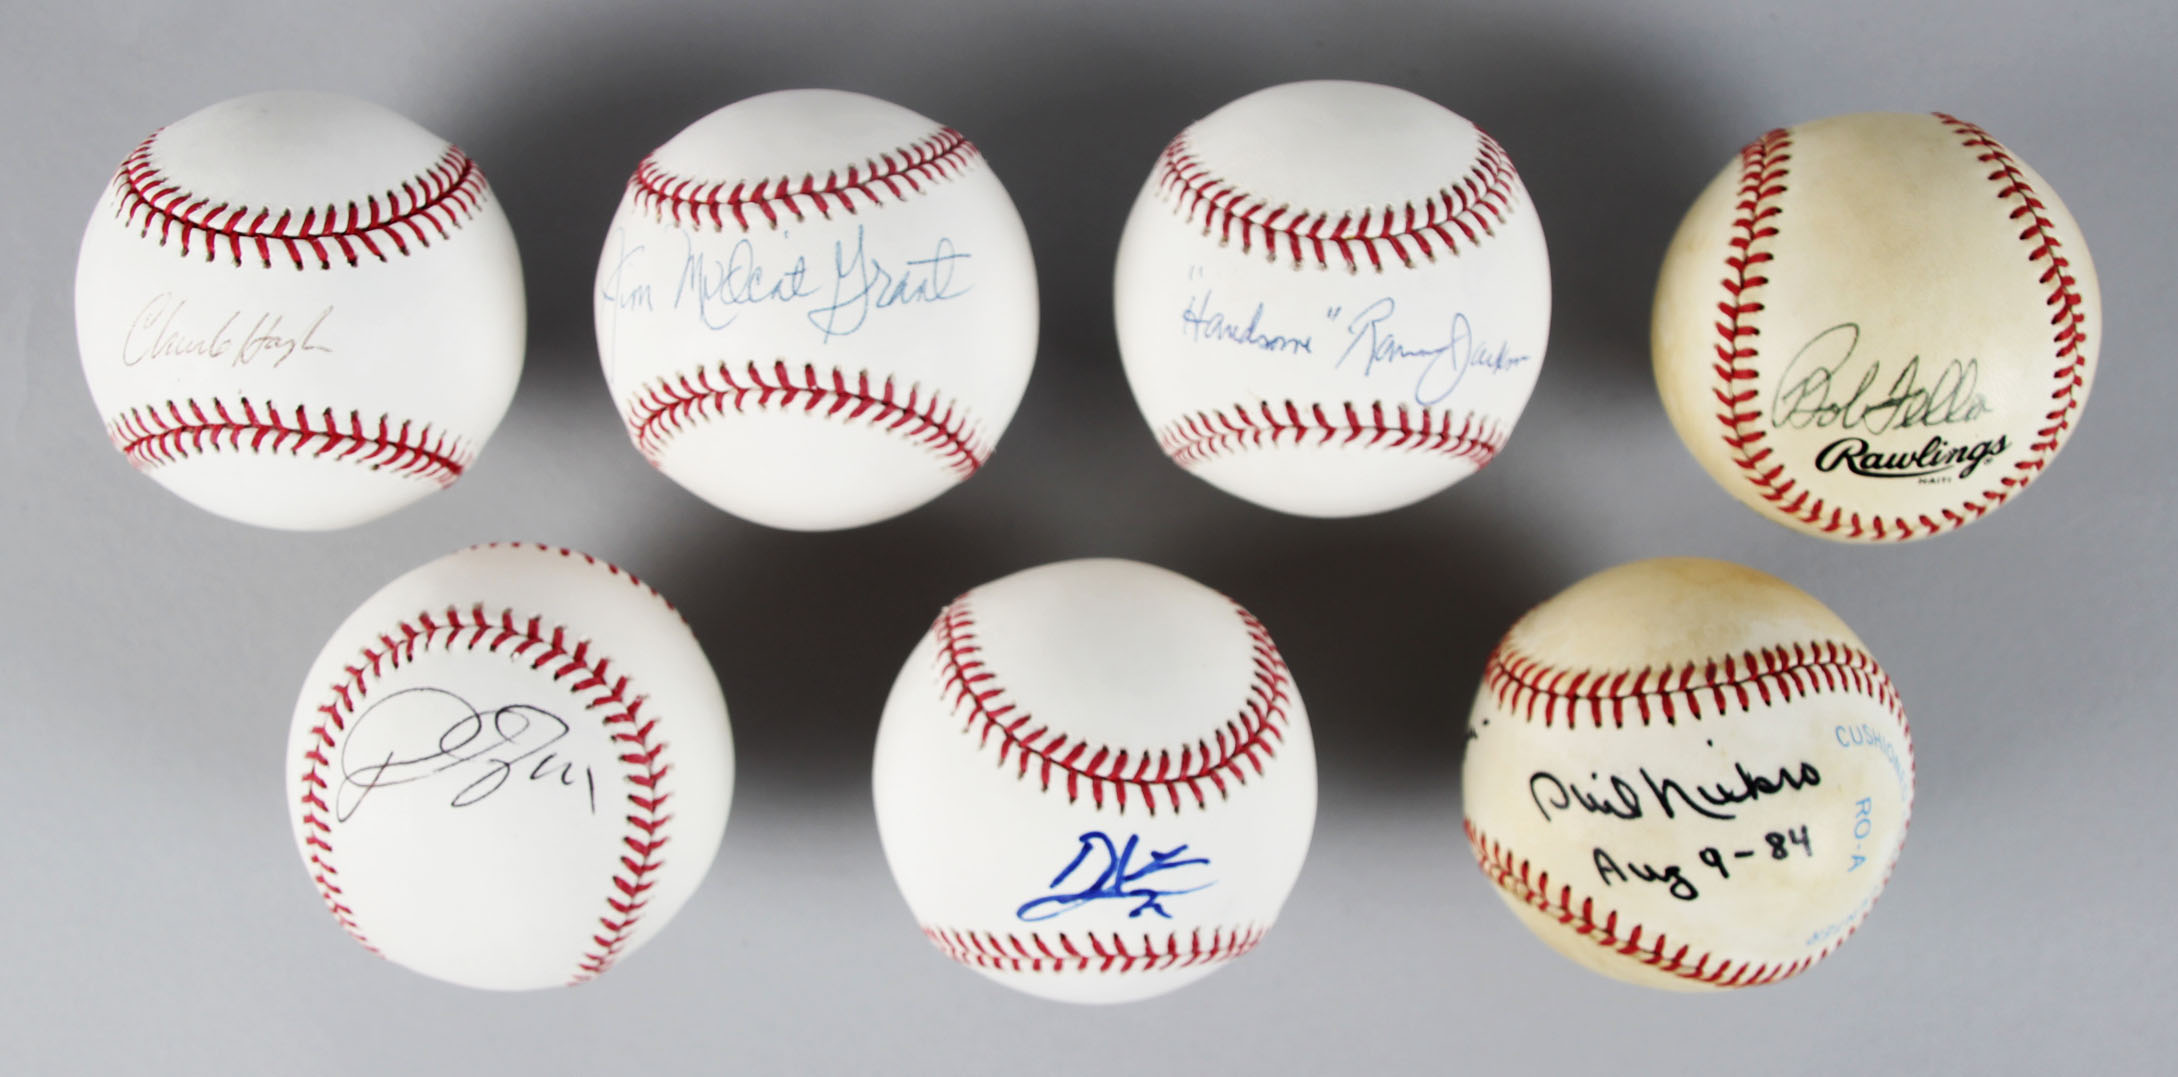 "MLB All-Star's Single-Signed Baseballs (7) – Bob Feller, Phil Niekro,""Mudcat"" Grant etc.- JSA65445_01"